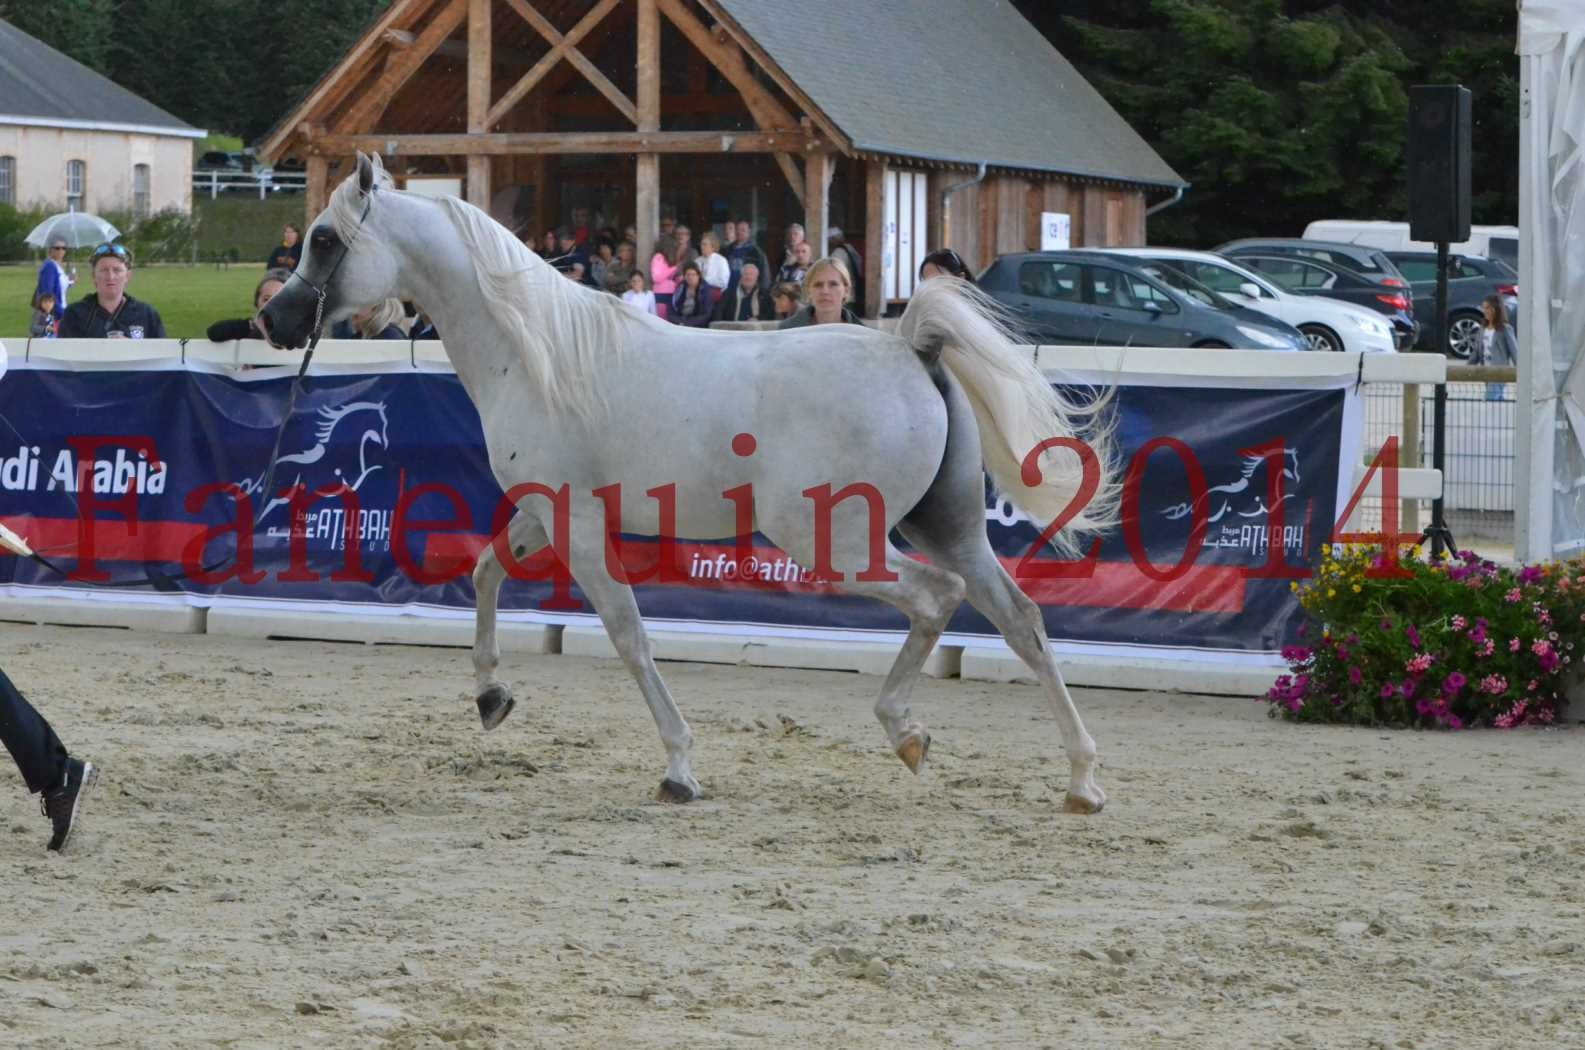 CHAMPIONNAT DE FRANCE 2014 A POMPADOUR - Sélection - FA STARLIGHT - 11